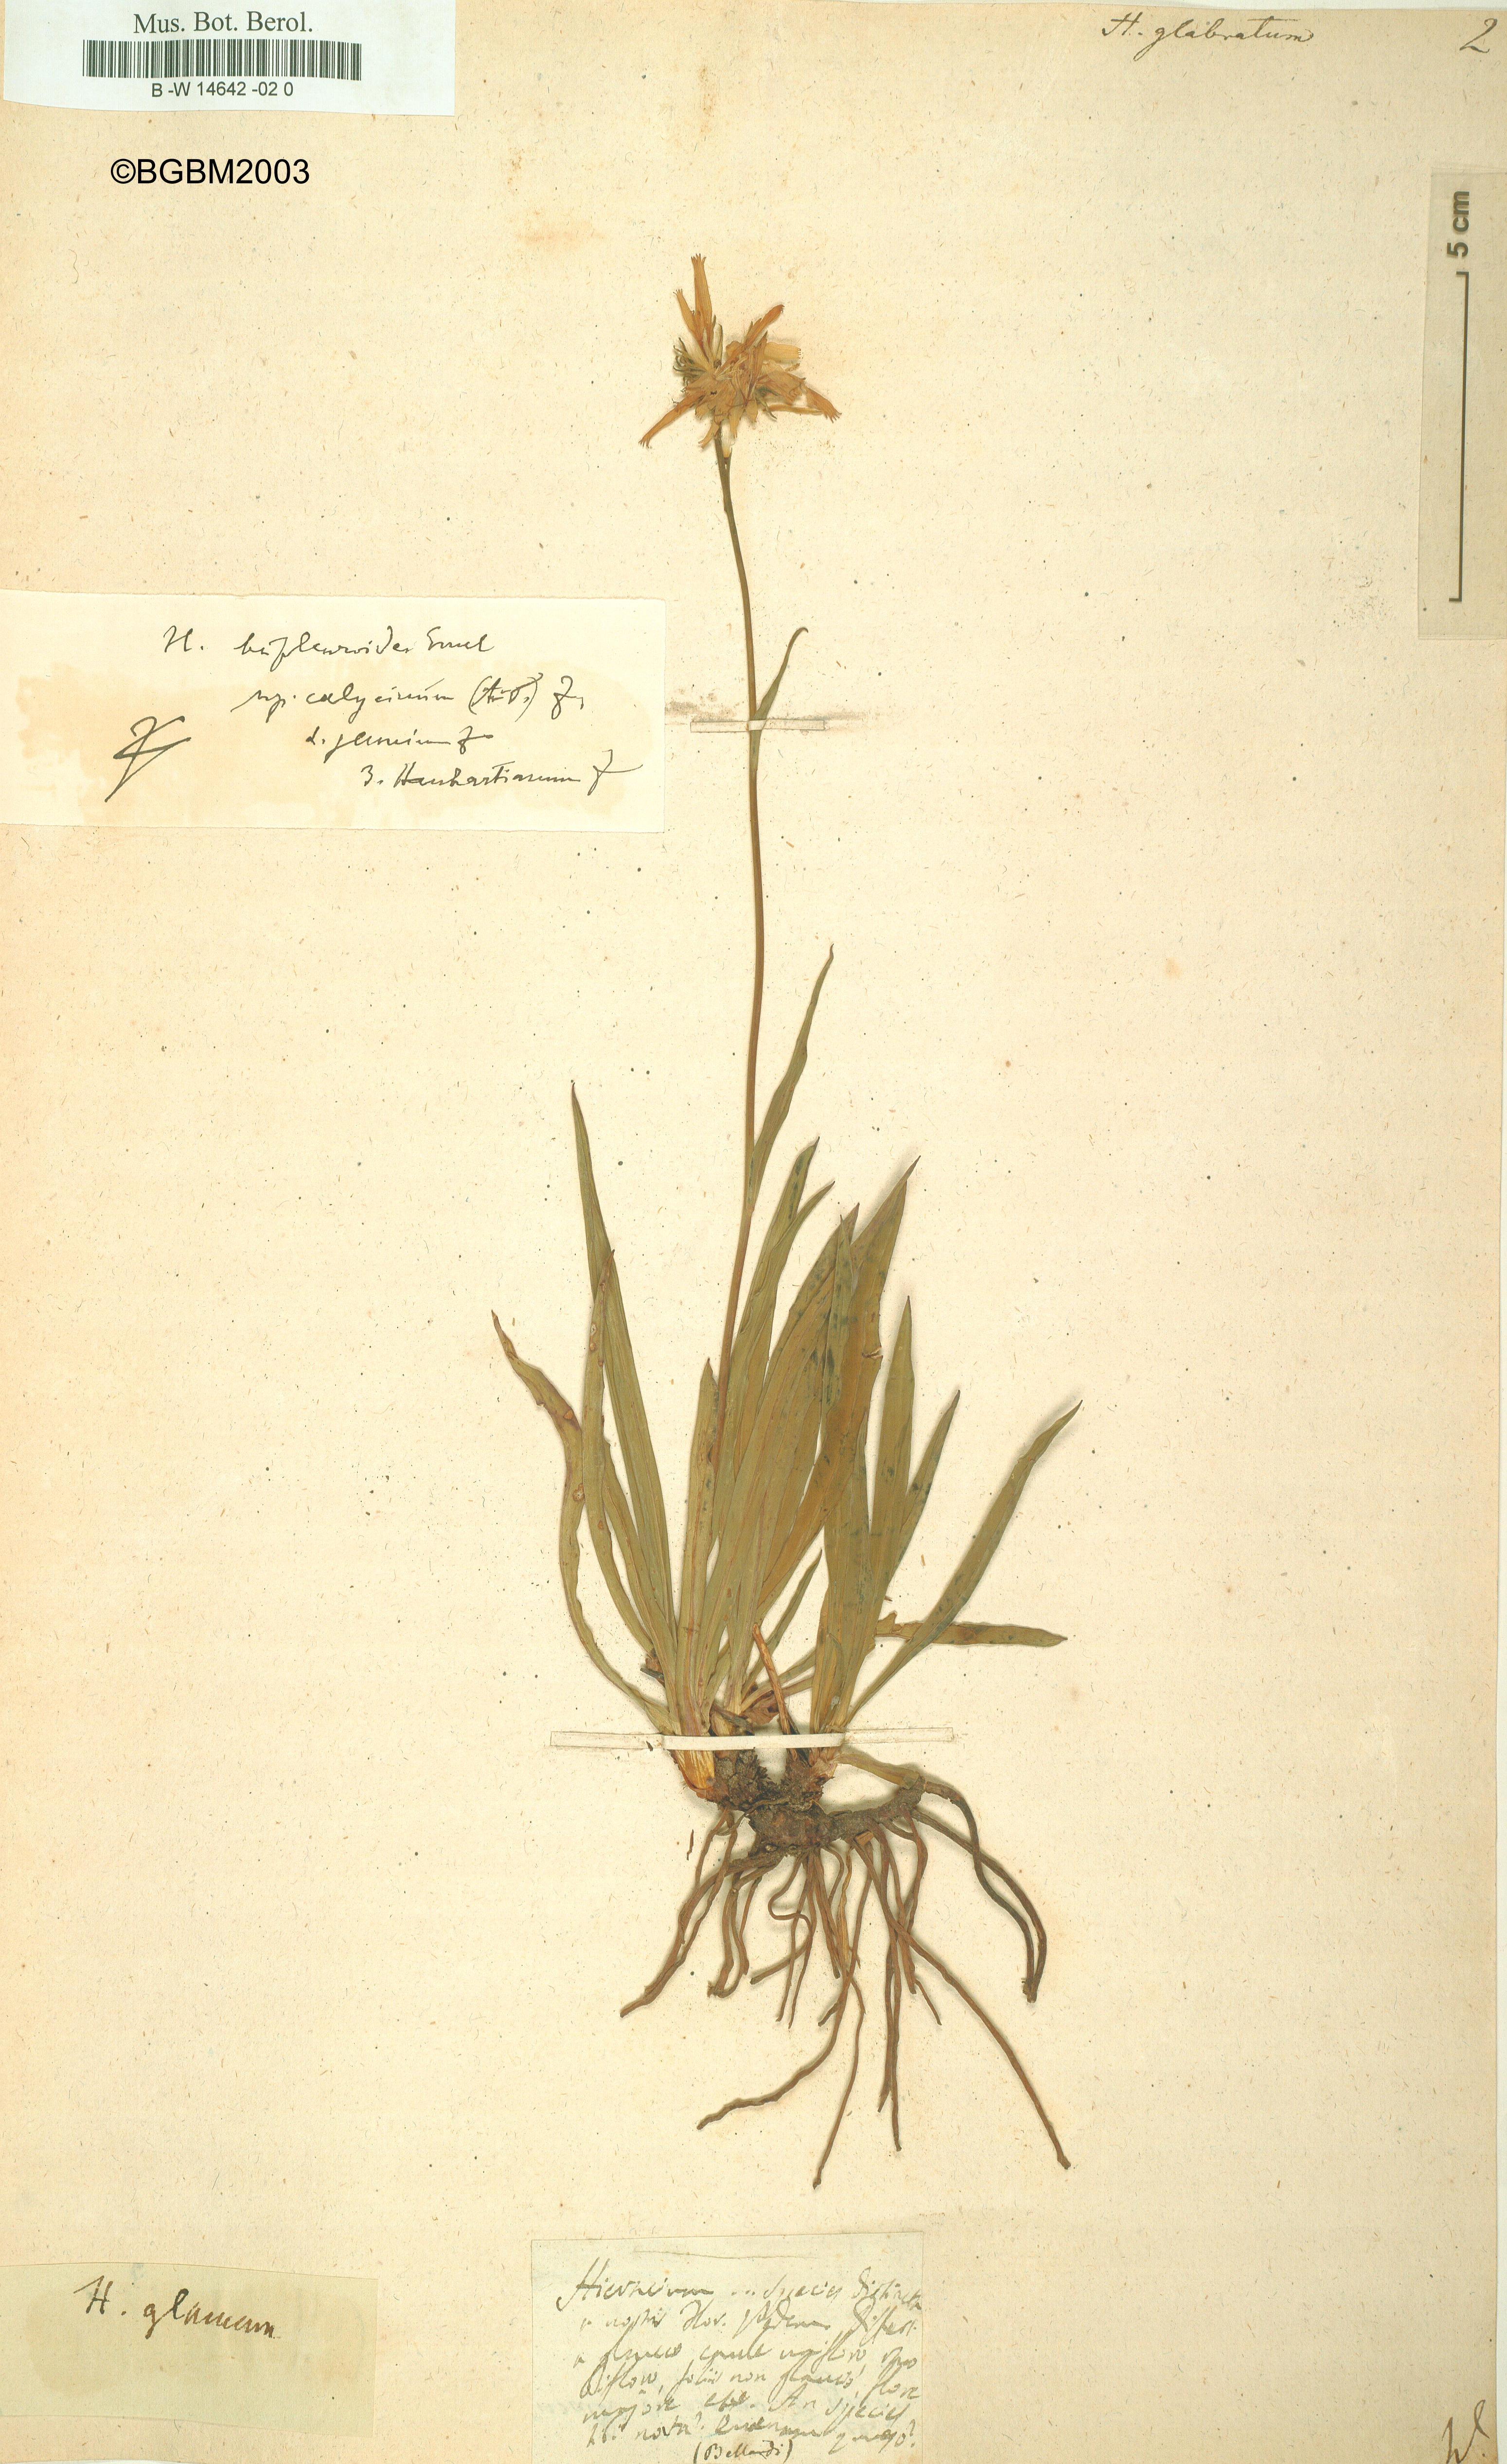 Röpert, D. (Ed.) 2000- (continuously updated): Digital specimen images at the Herbarium Berolinense. - Published on the Internet http://ww2.bgbm.org/herbarium/ (Barcode: B -W 14642 -02 0 / ImageId: 174245) [accessed 20-Nov-11].<br>by